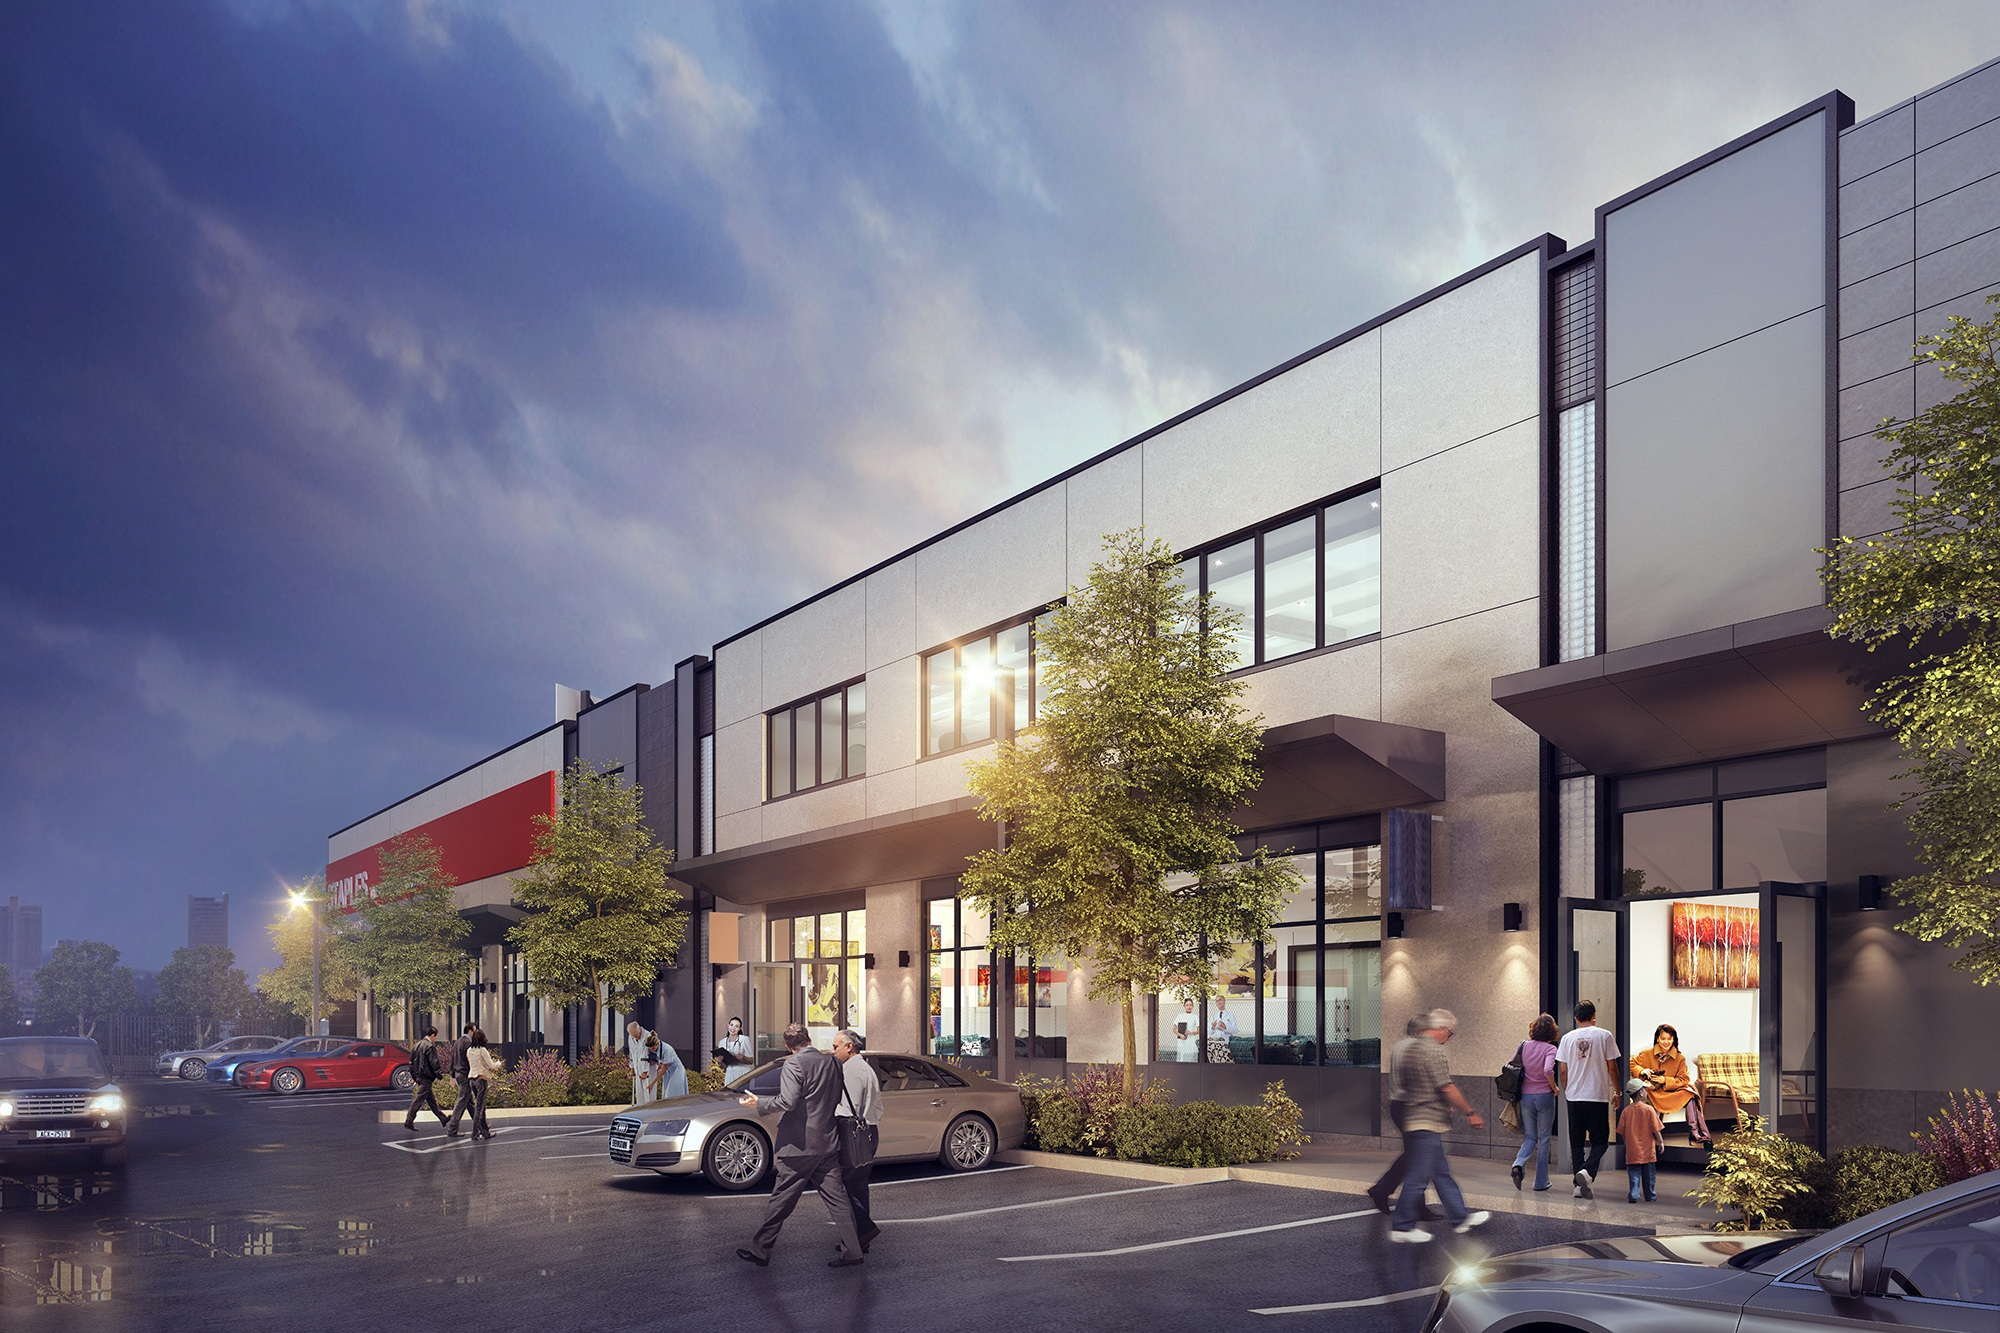 Loci To Design Retail and Medical Center in Queens - March 2016Loci starts work on designing the conversion of a 55,000 SF warehouse in Queens to a retail and medical center.